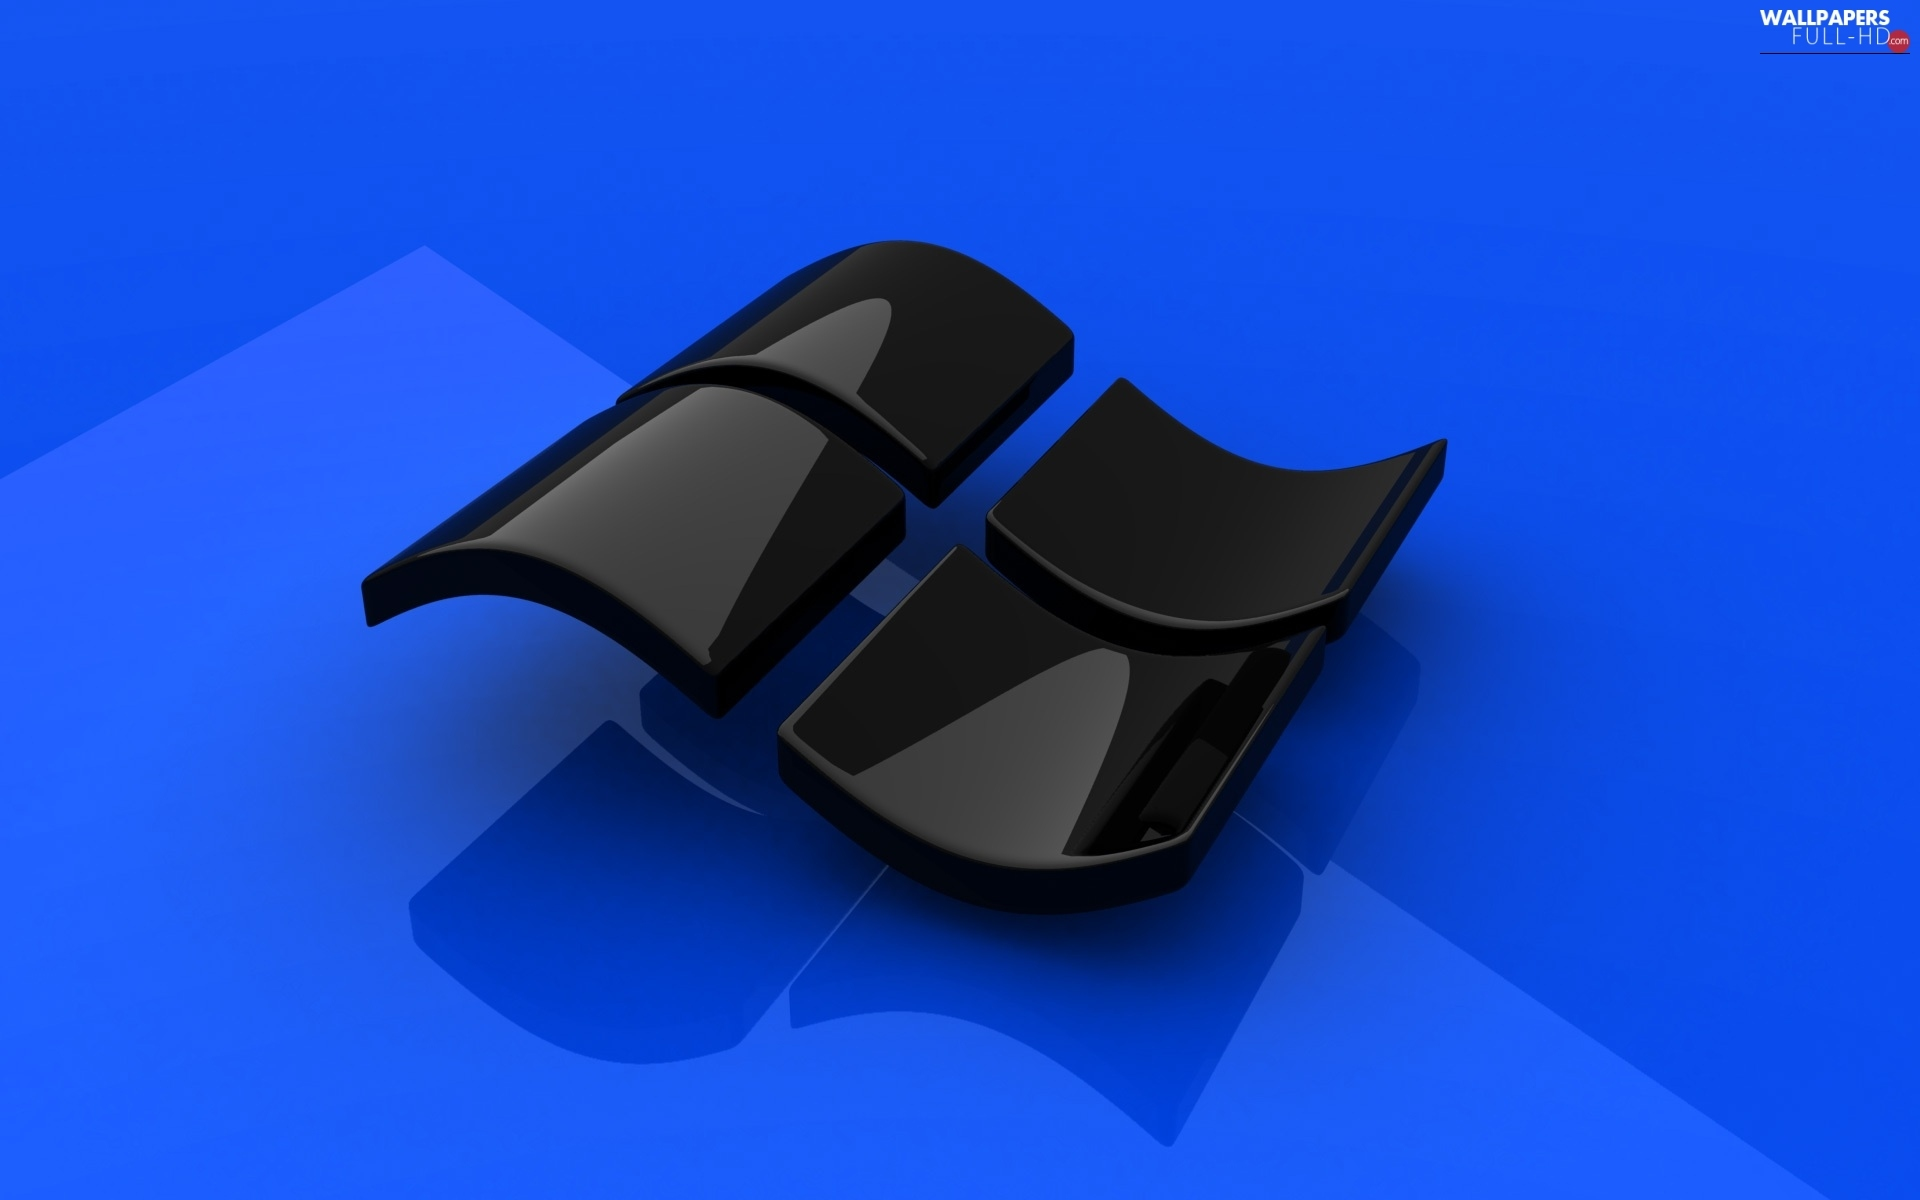 Black, blue background, Logo Windows 8